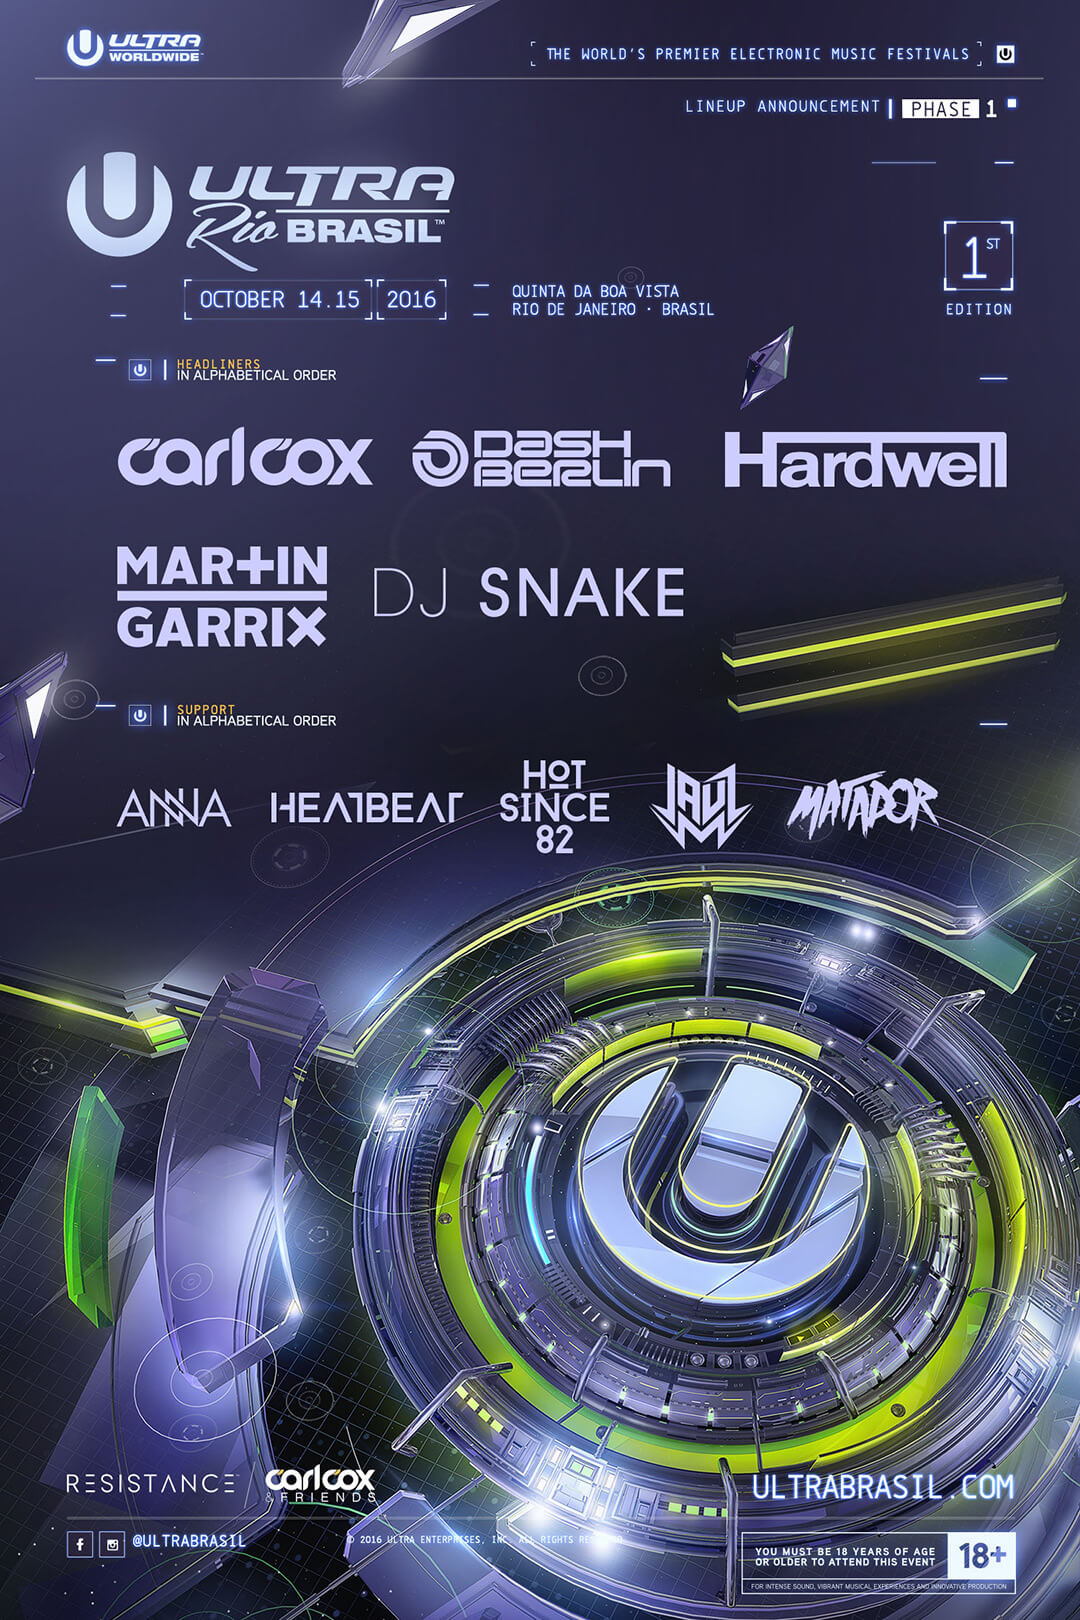 ULTRA Brasil Announces Full Phase One Lineup